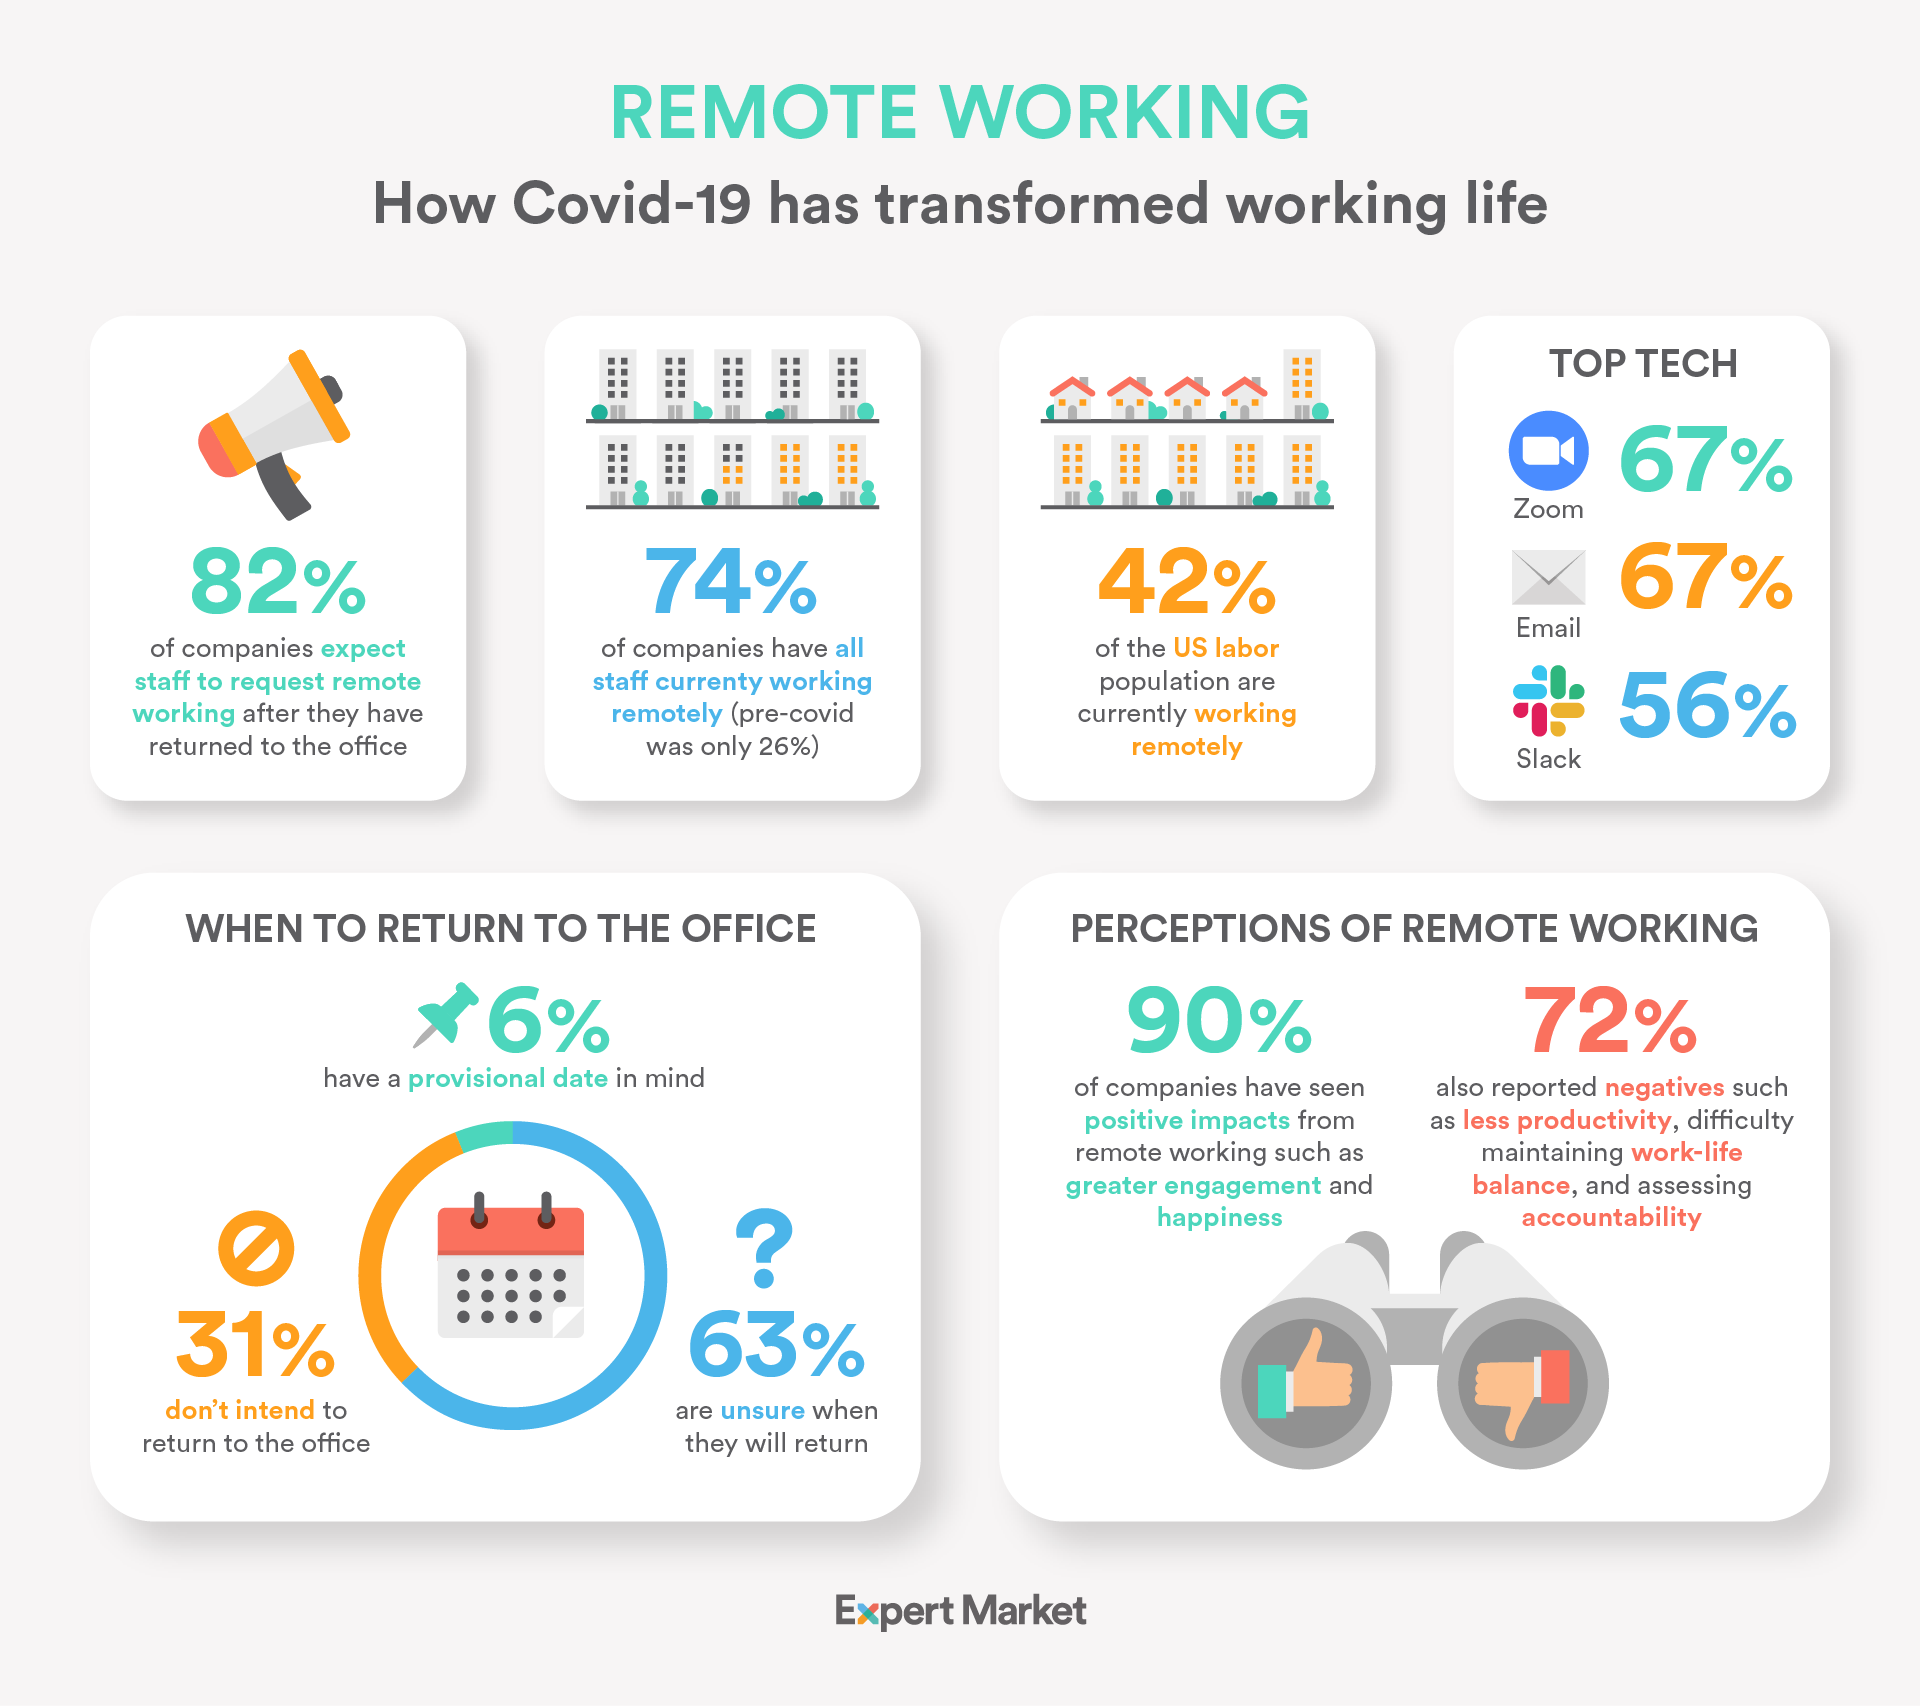 research findings on remote working during covid-19